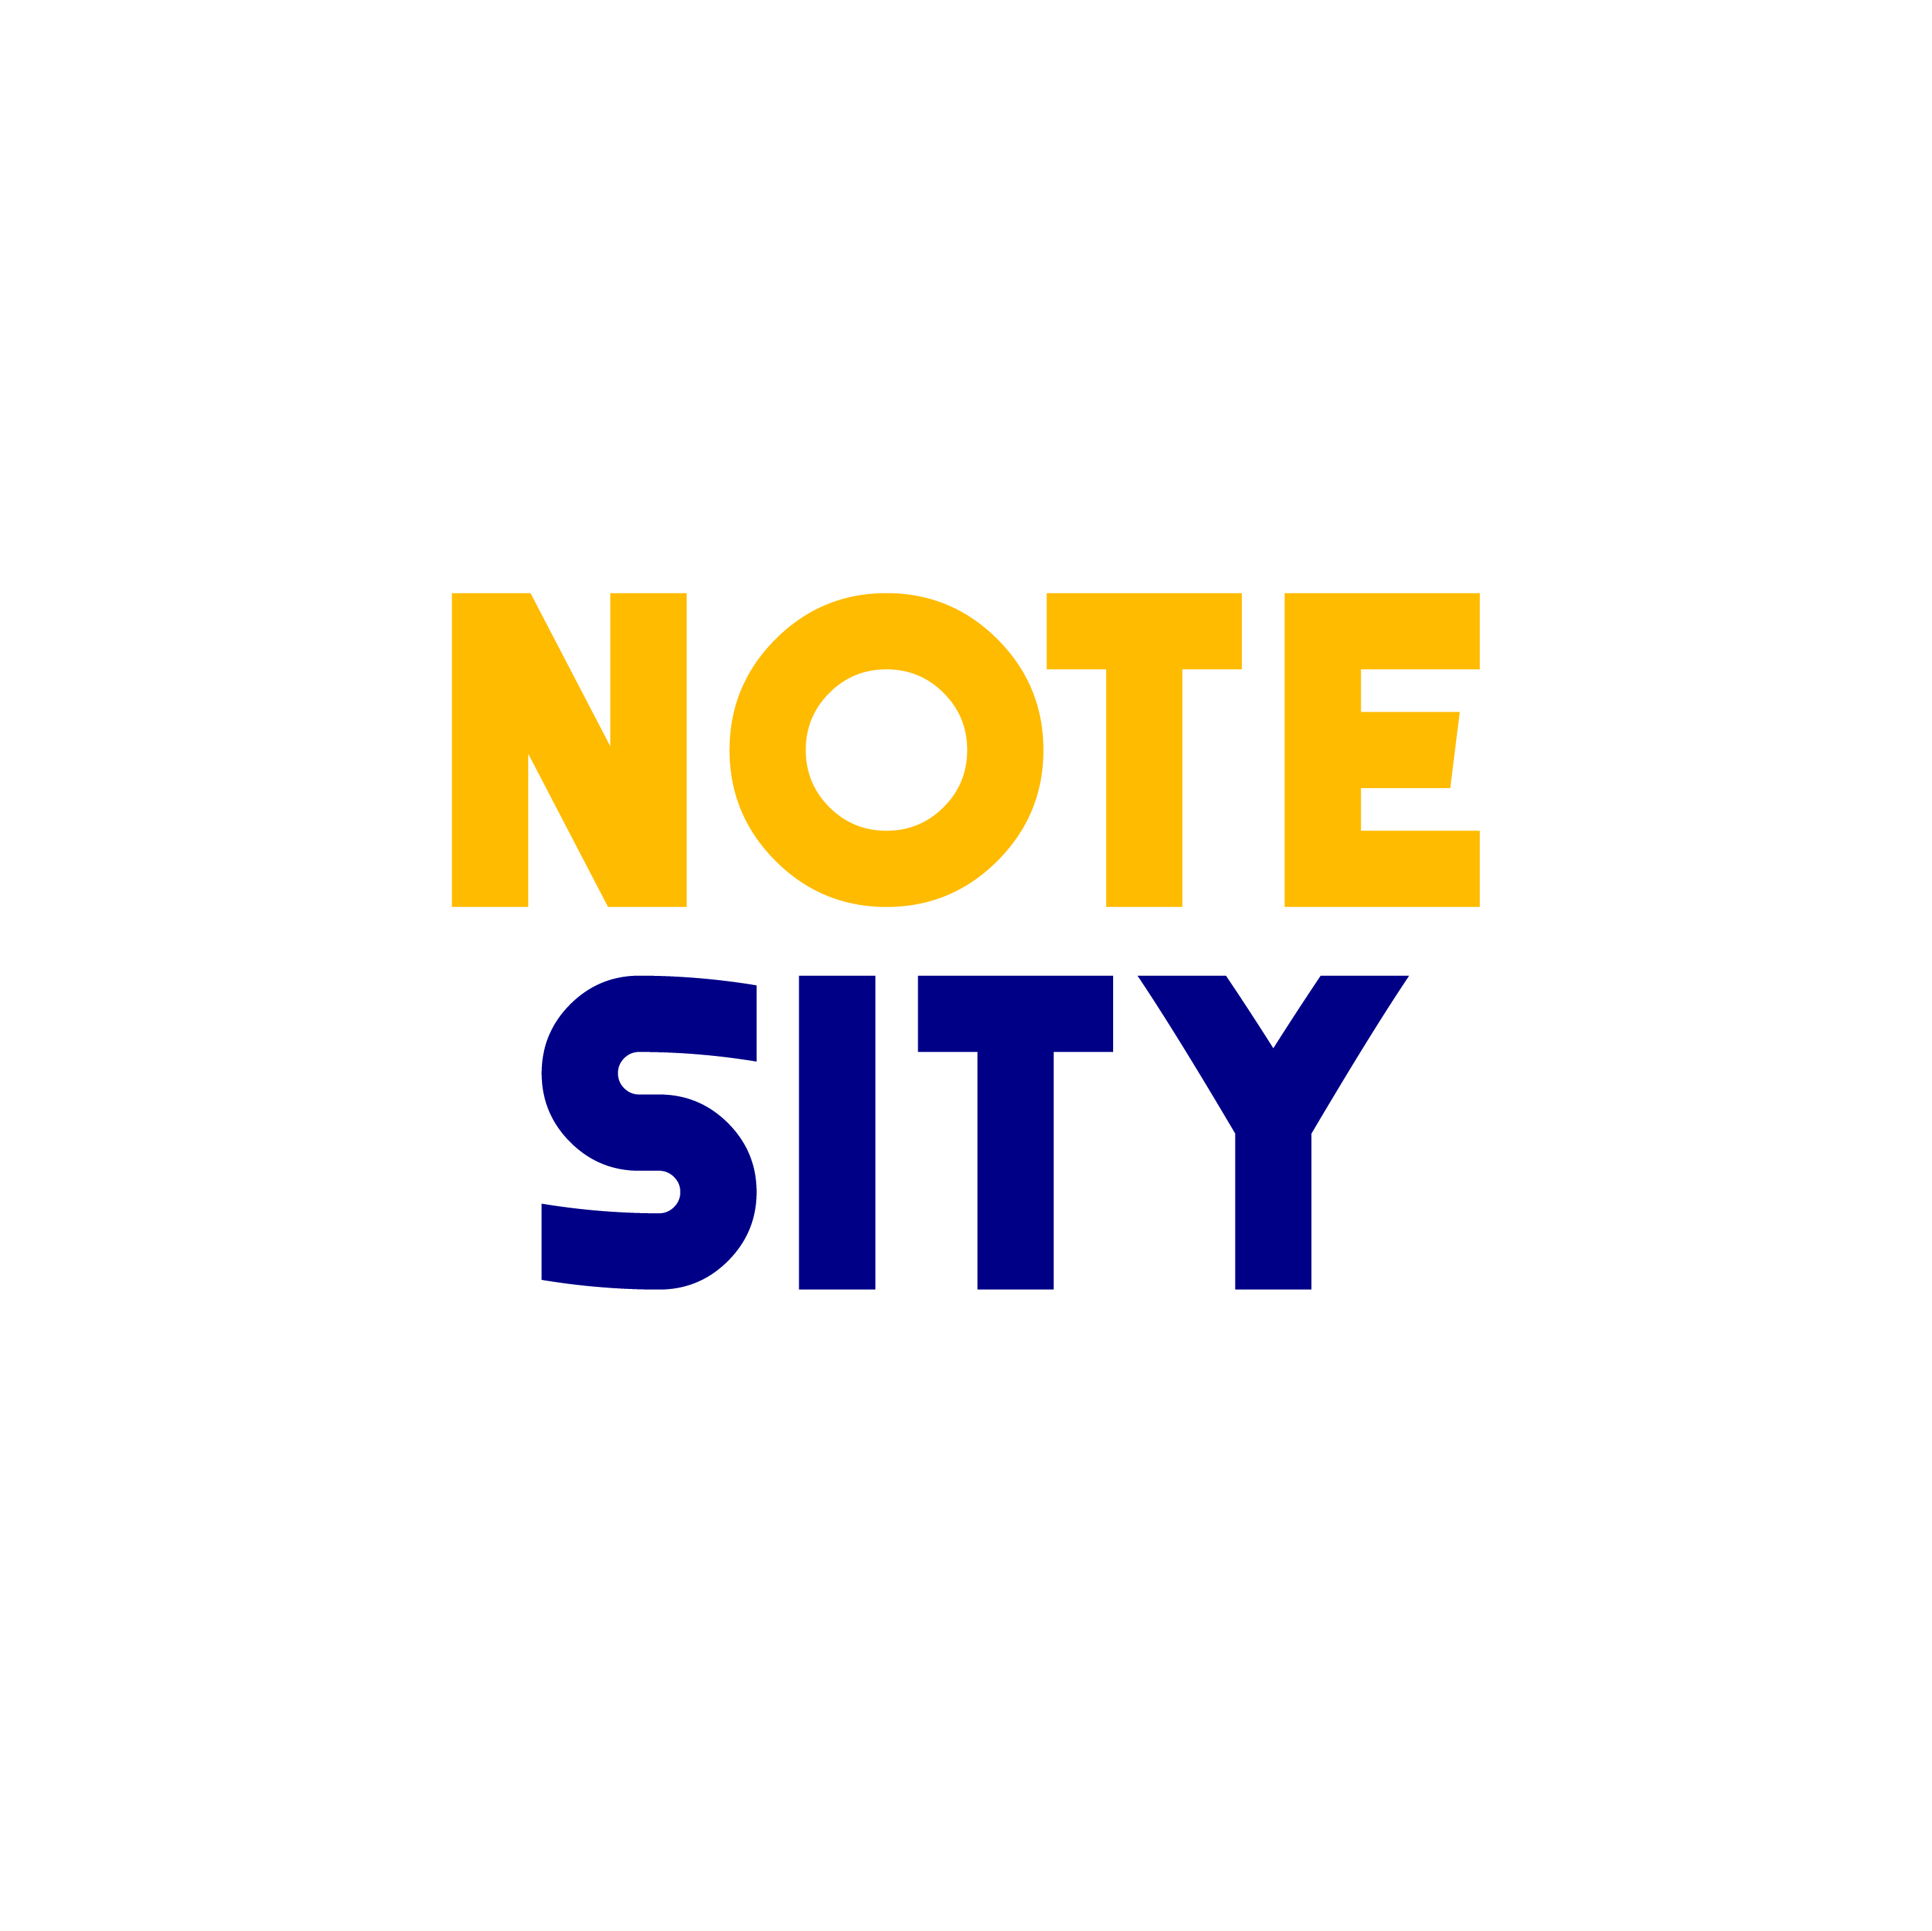 NoteSity